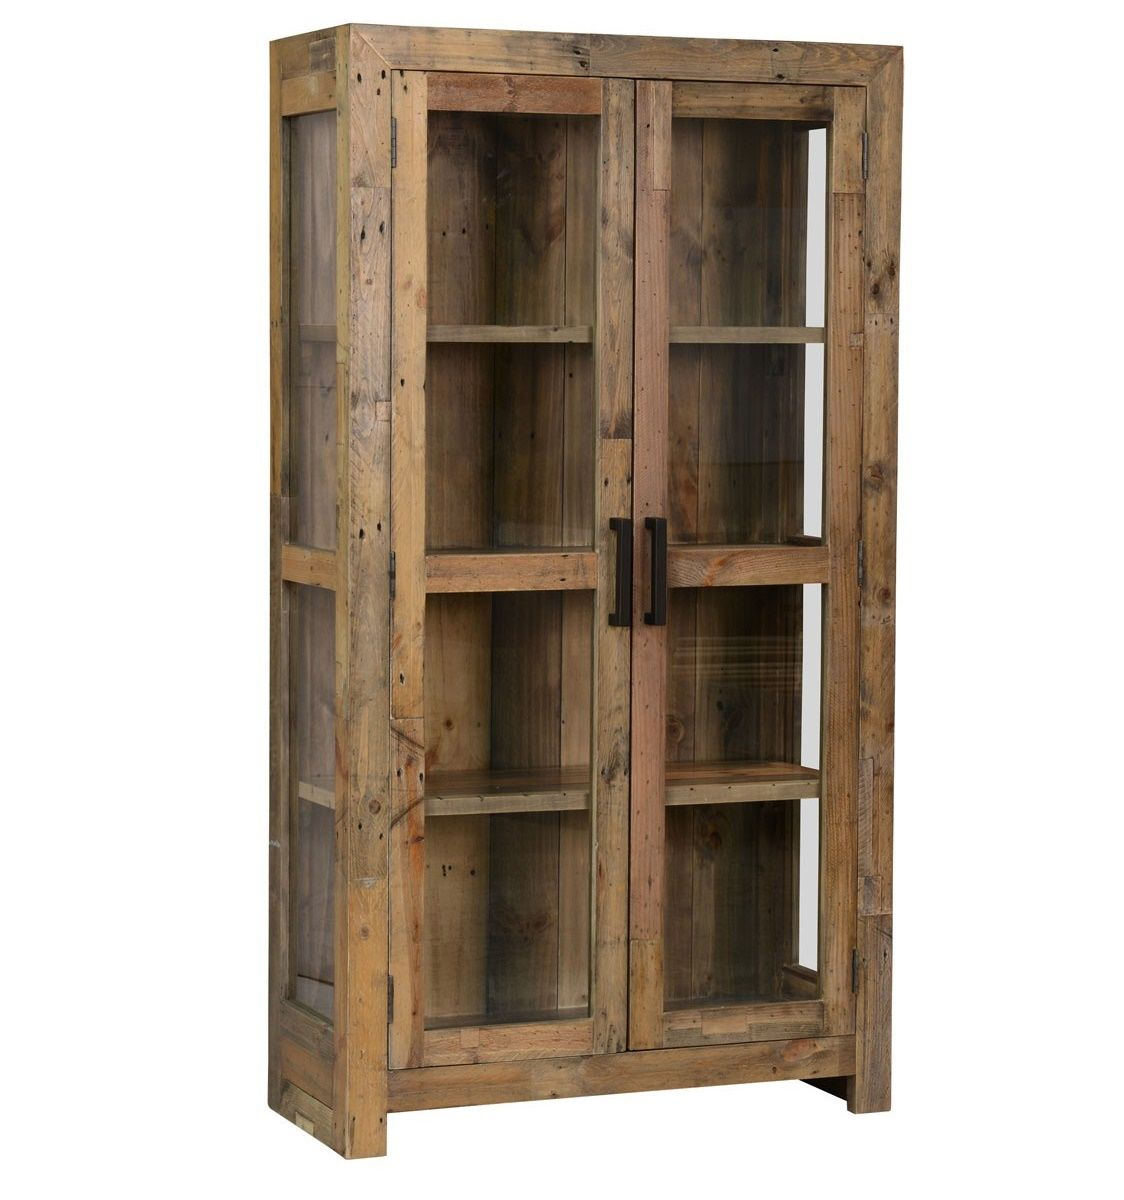 Angora natural reclaimed wood curio cabinet glass doors doors and angora natural reclaimed wood curio cabinet with glass doors zin home planetlyrics Choice Image